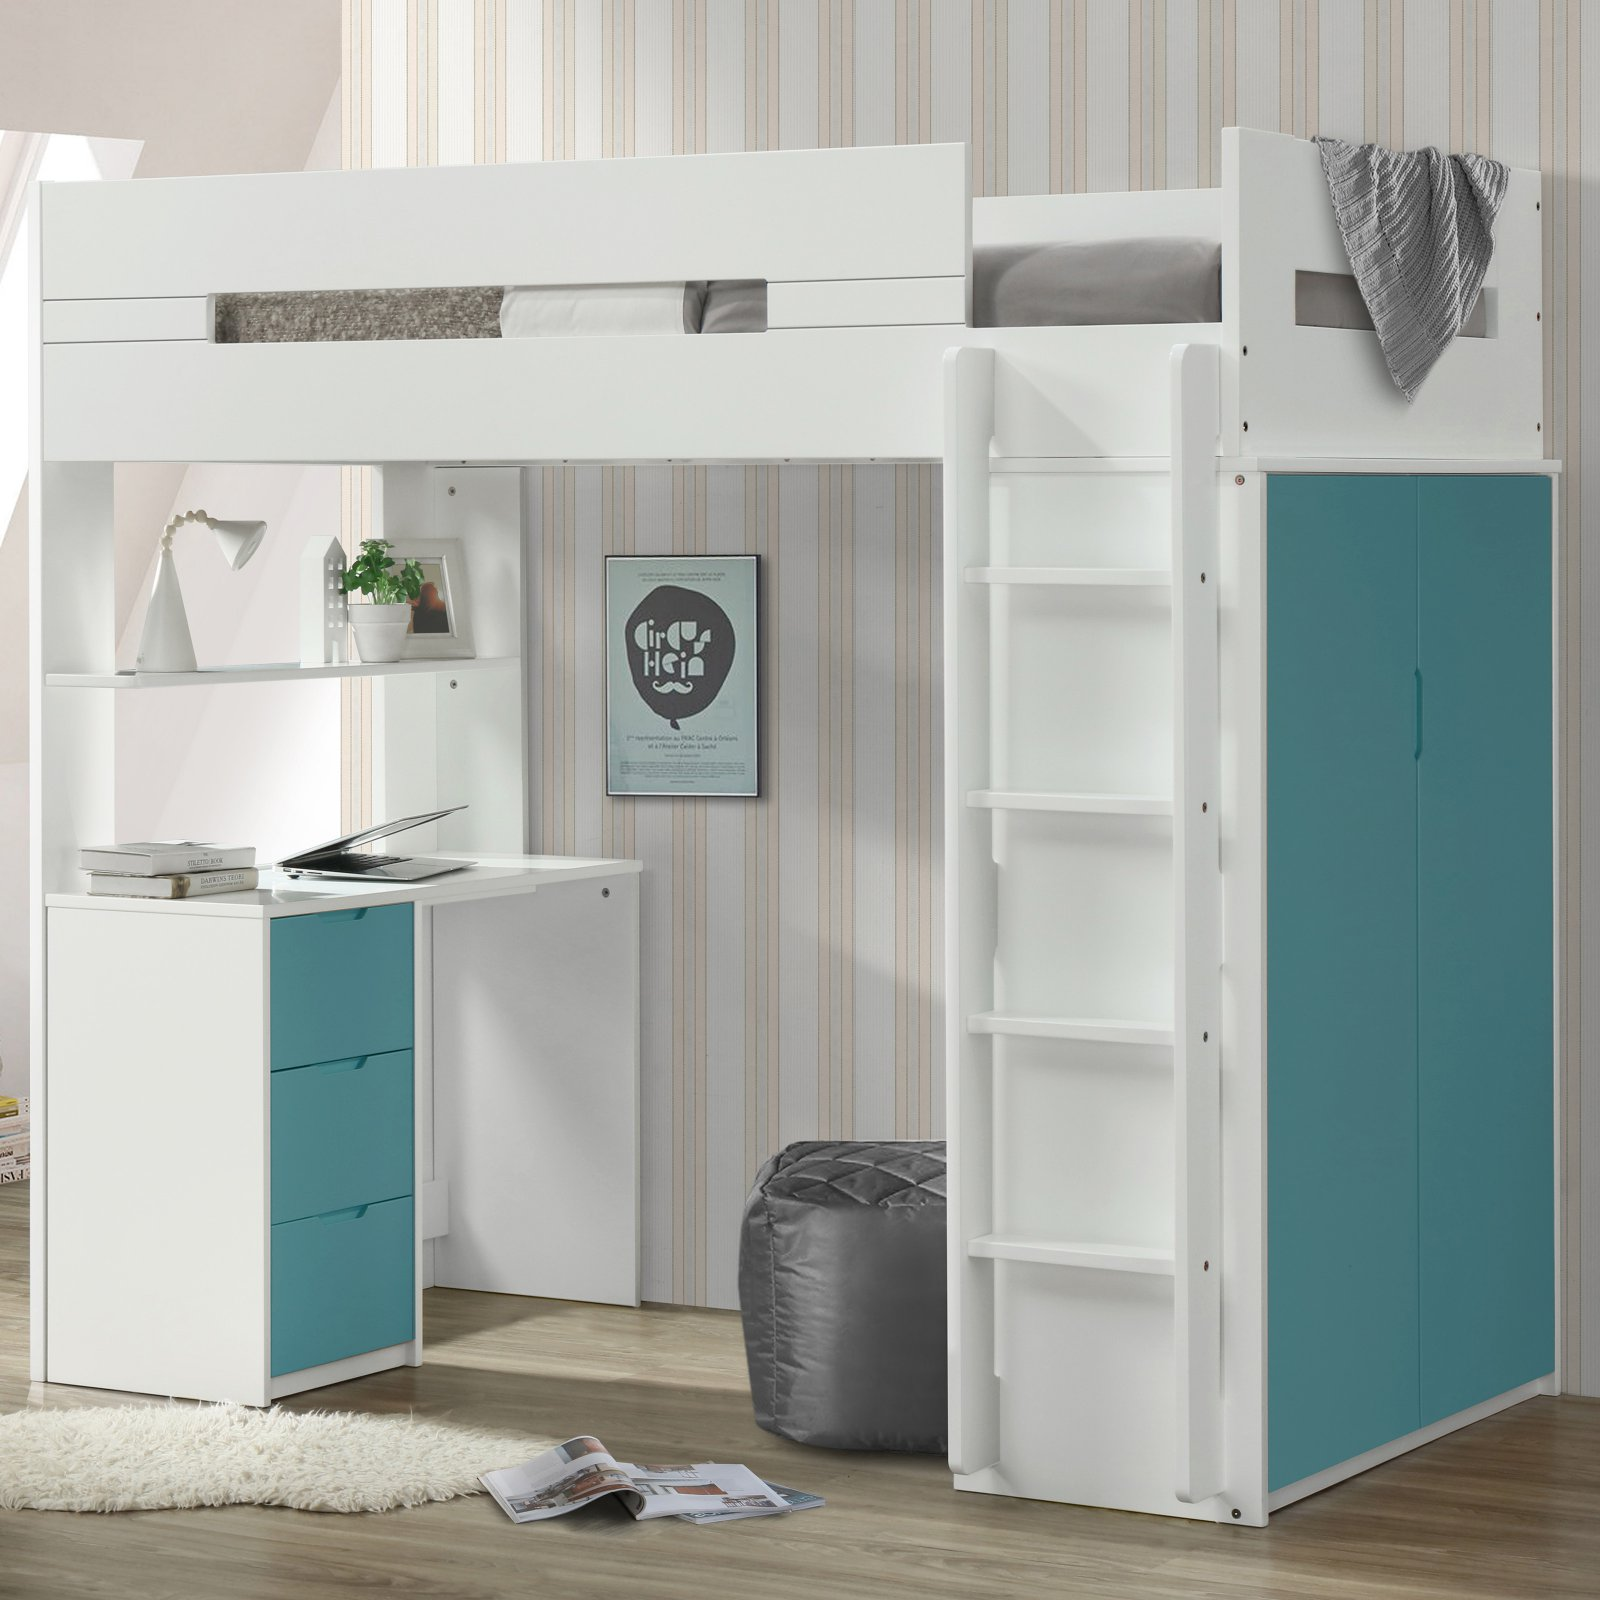 ACME Nerice Twin Loft Bed with Desk and Wardrobe in White, Multiple Colors